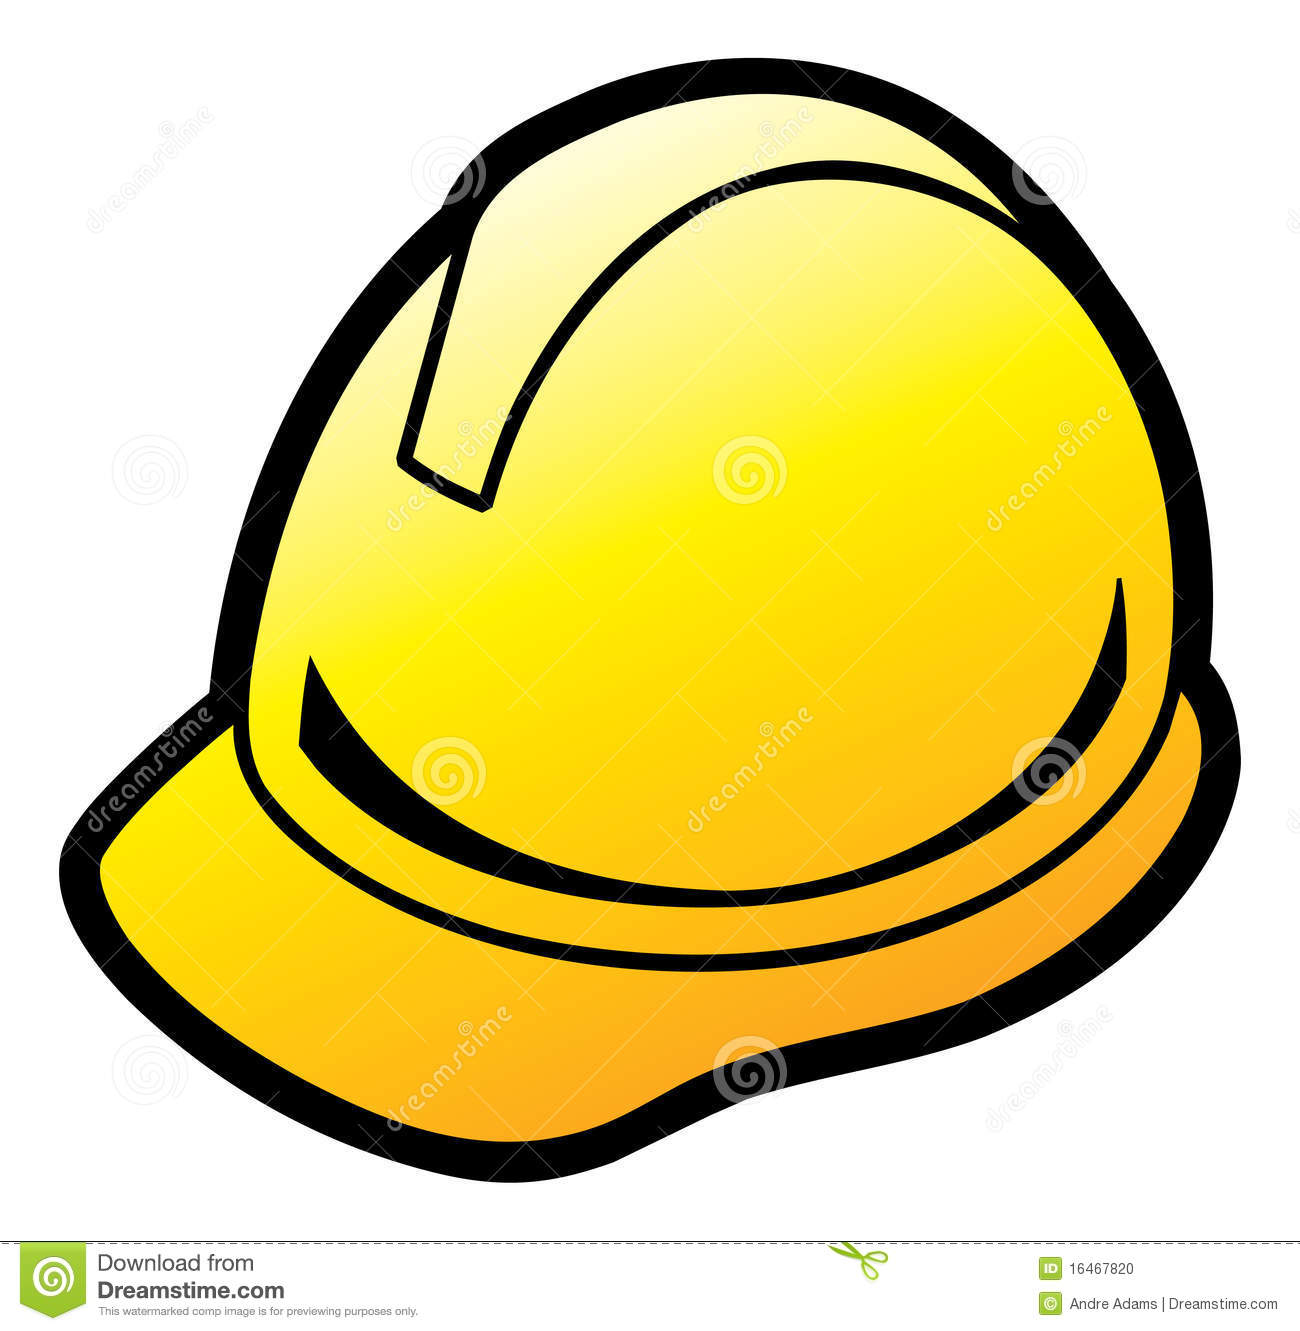 construction worker hat clipart - photo #28